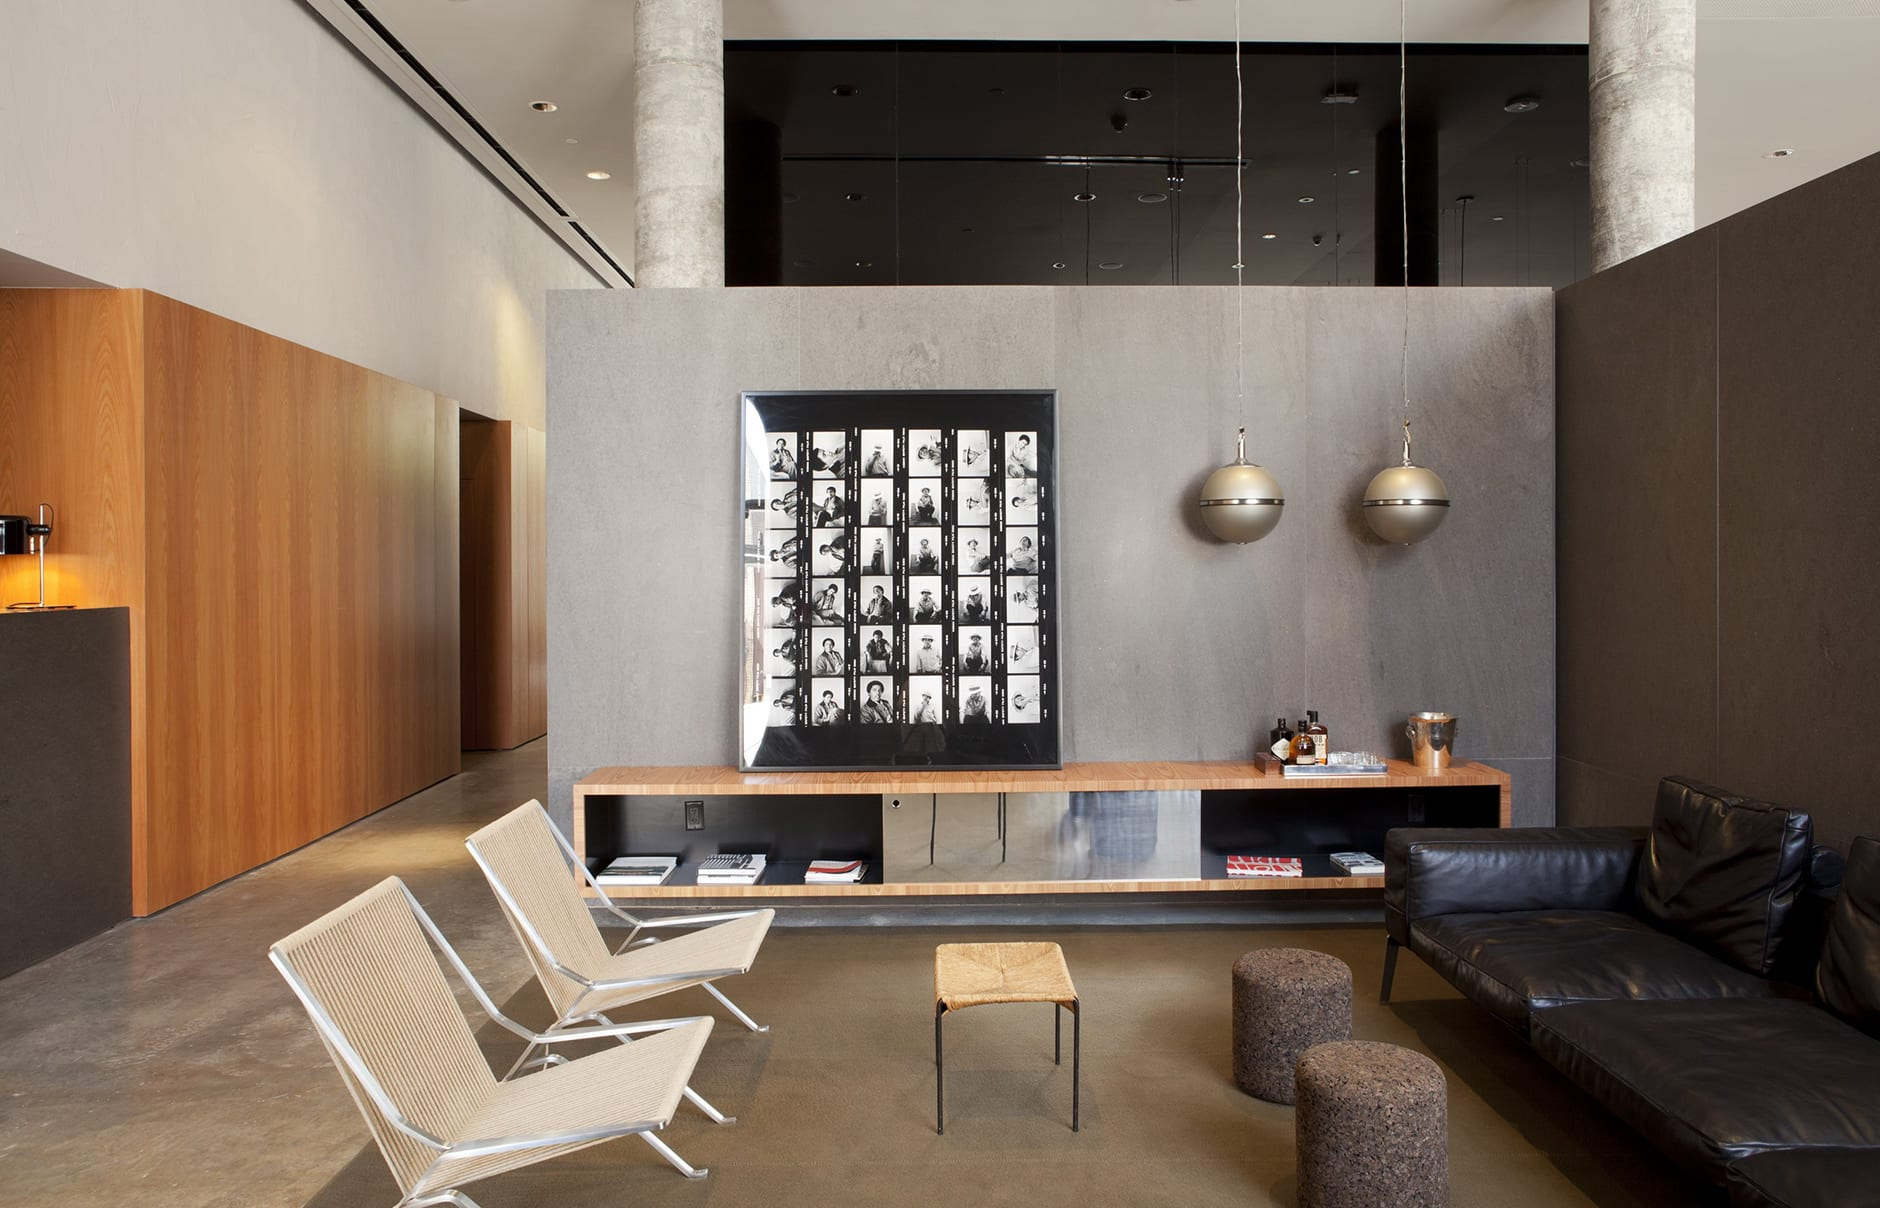 Hotel Americano New York, USA. Hotel Review by TravelPlusStyle. Photo © Hotel Americano